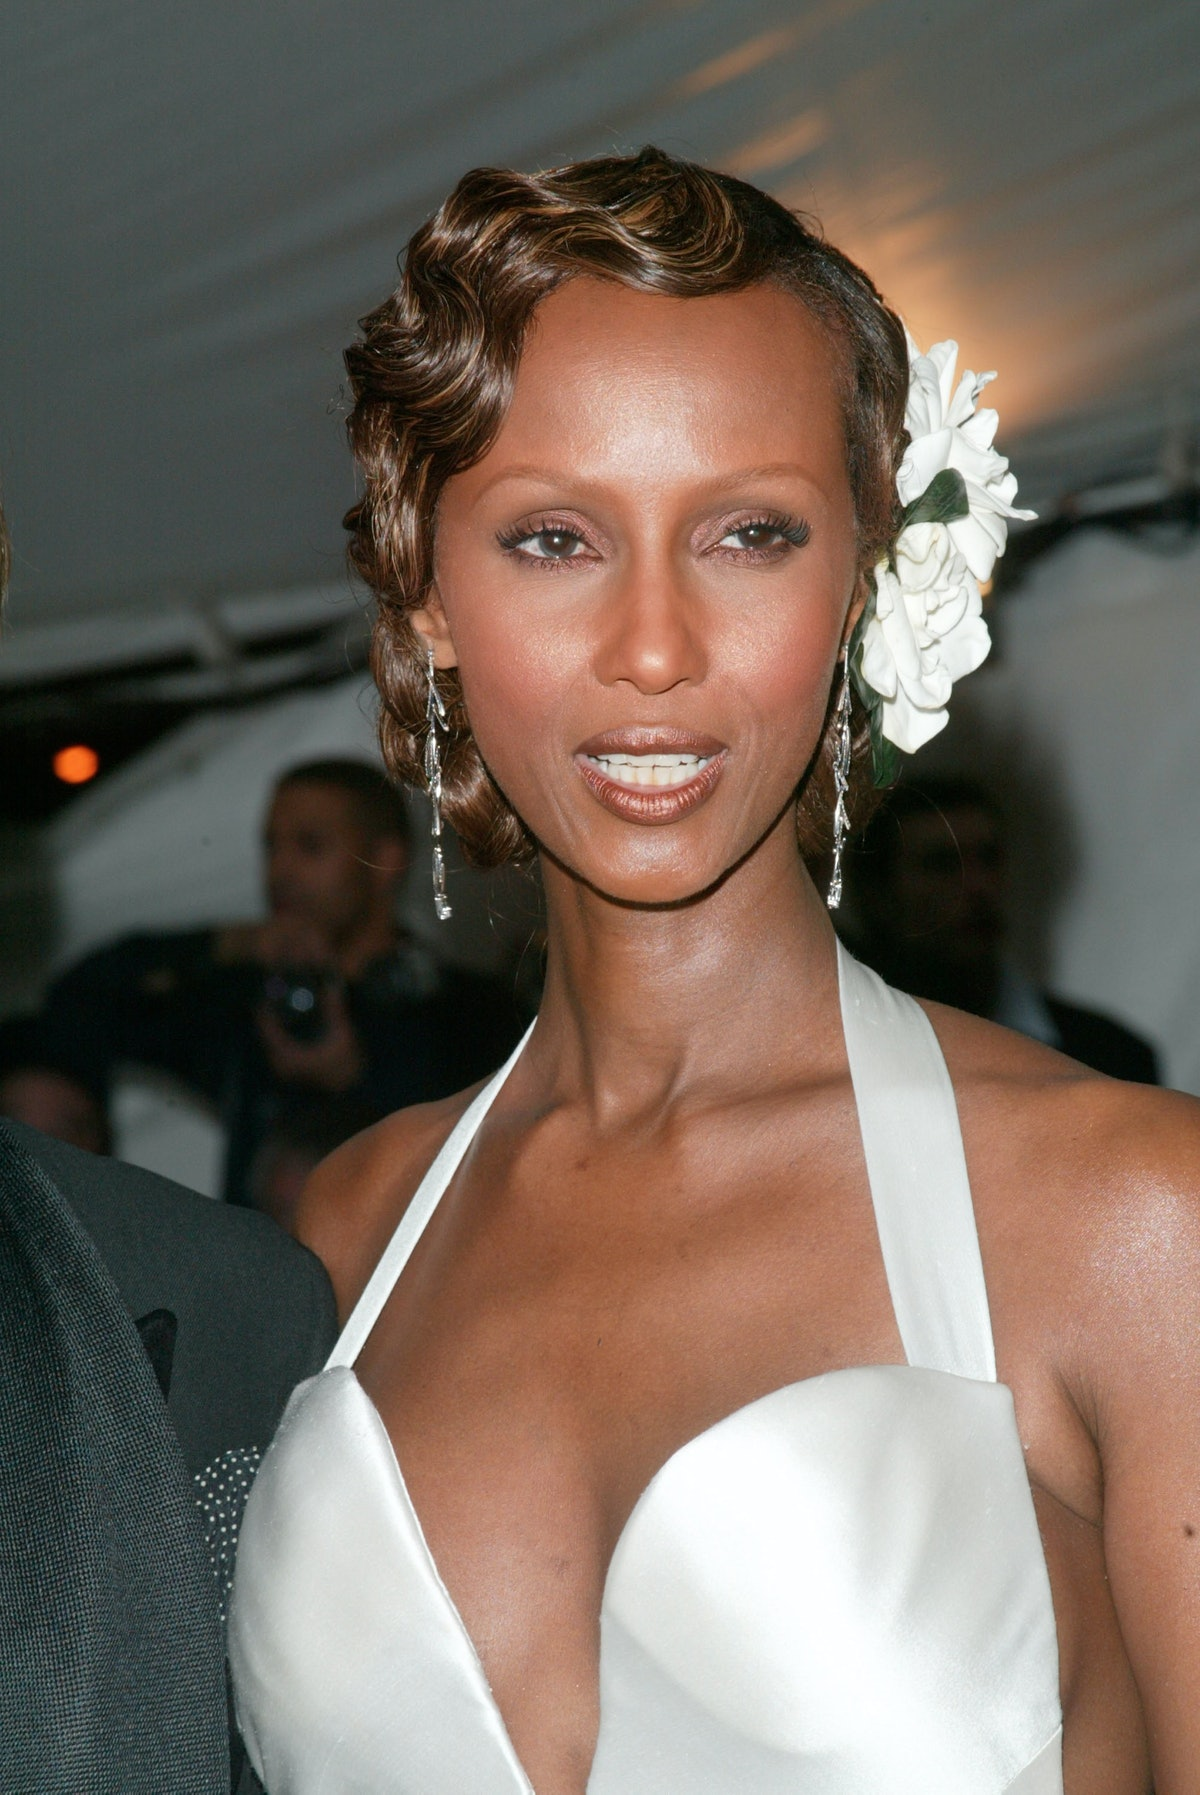 NEW YORK - APRIL 28:  (US TABS AND HOLLYWOOD REPORTER OUT) Model Iman arrives at the Metropolitan Mu...